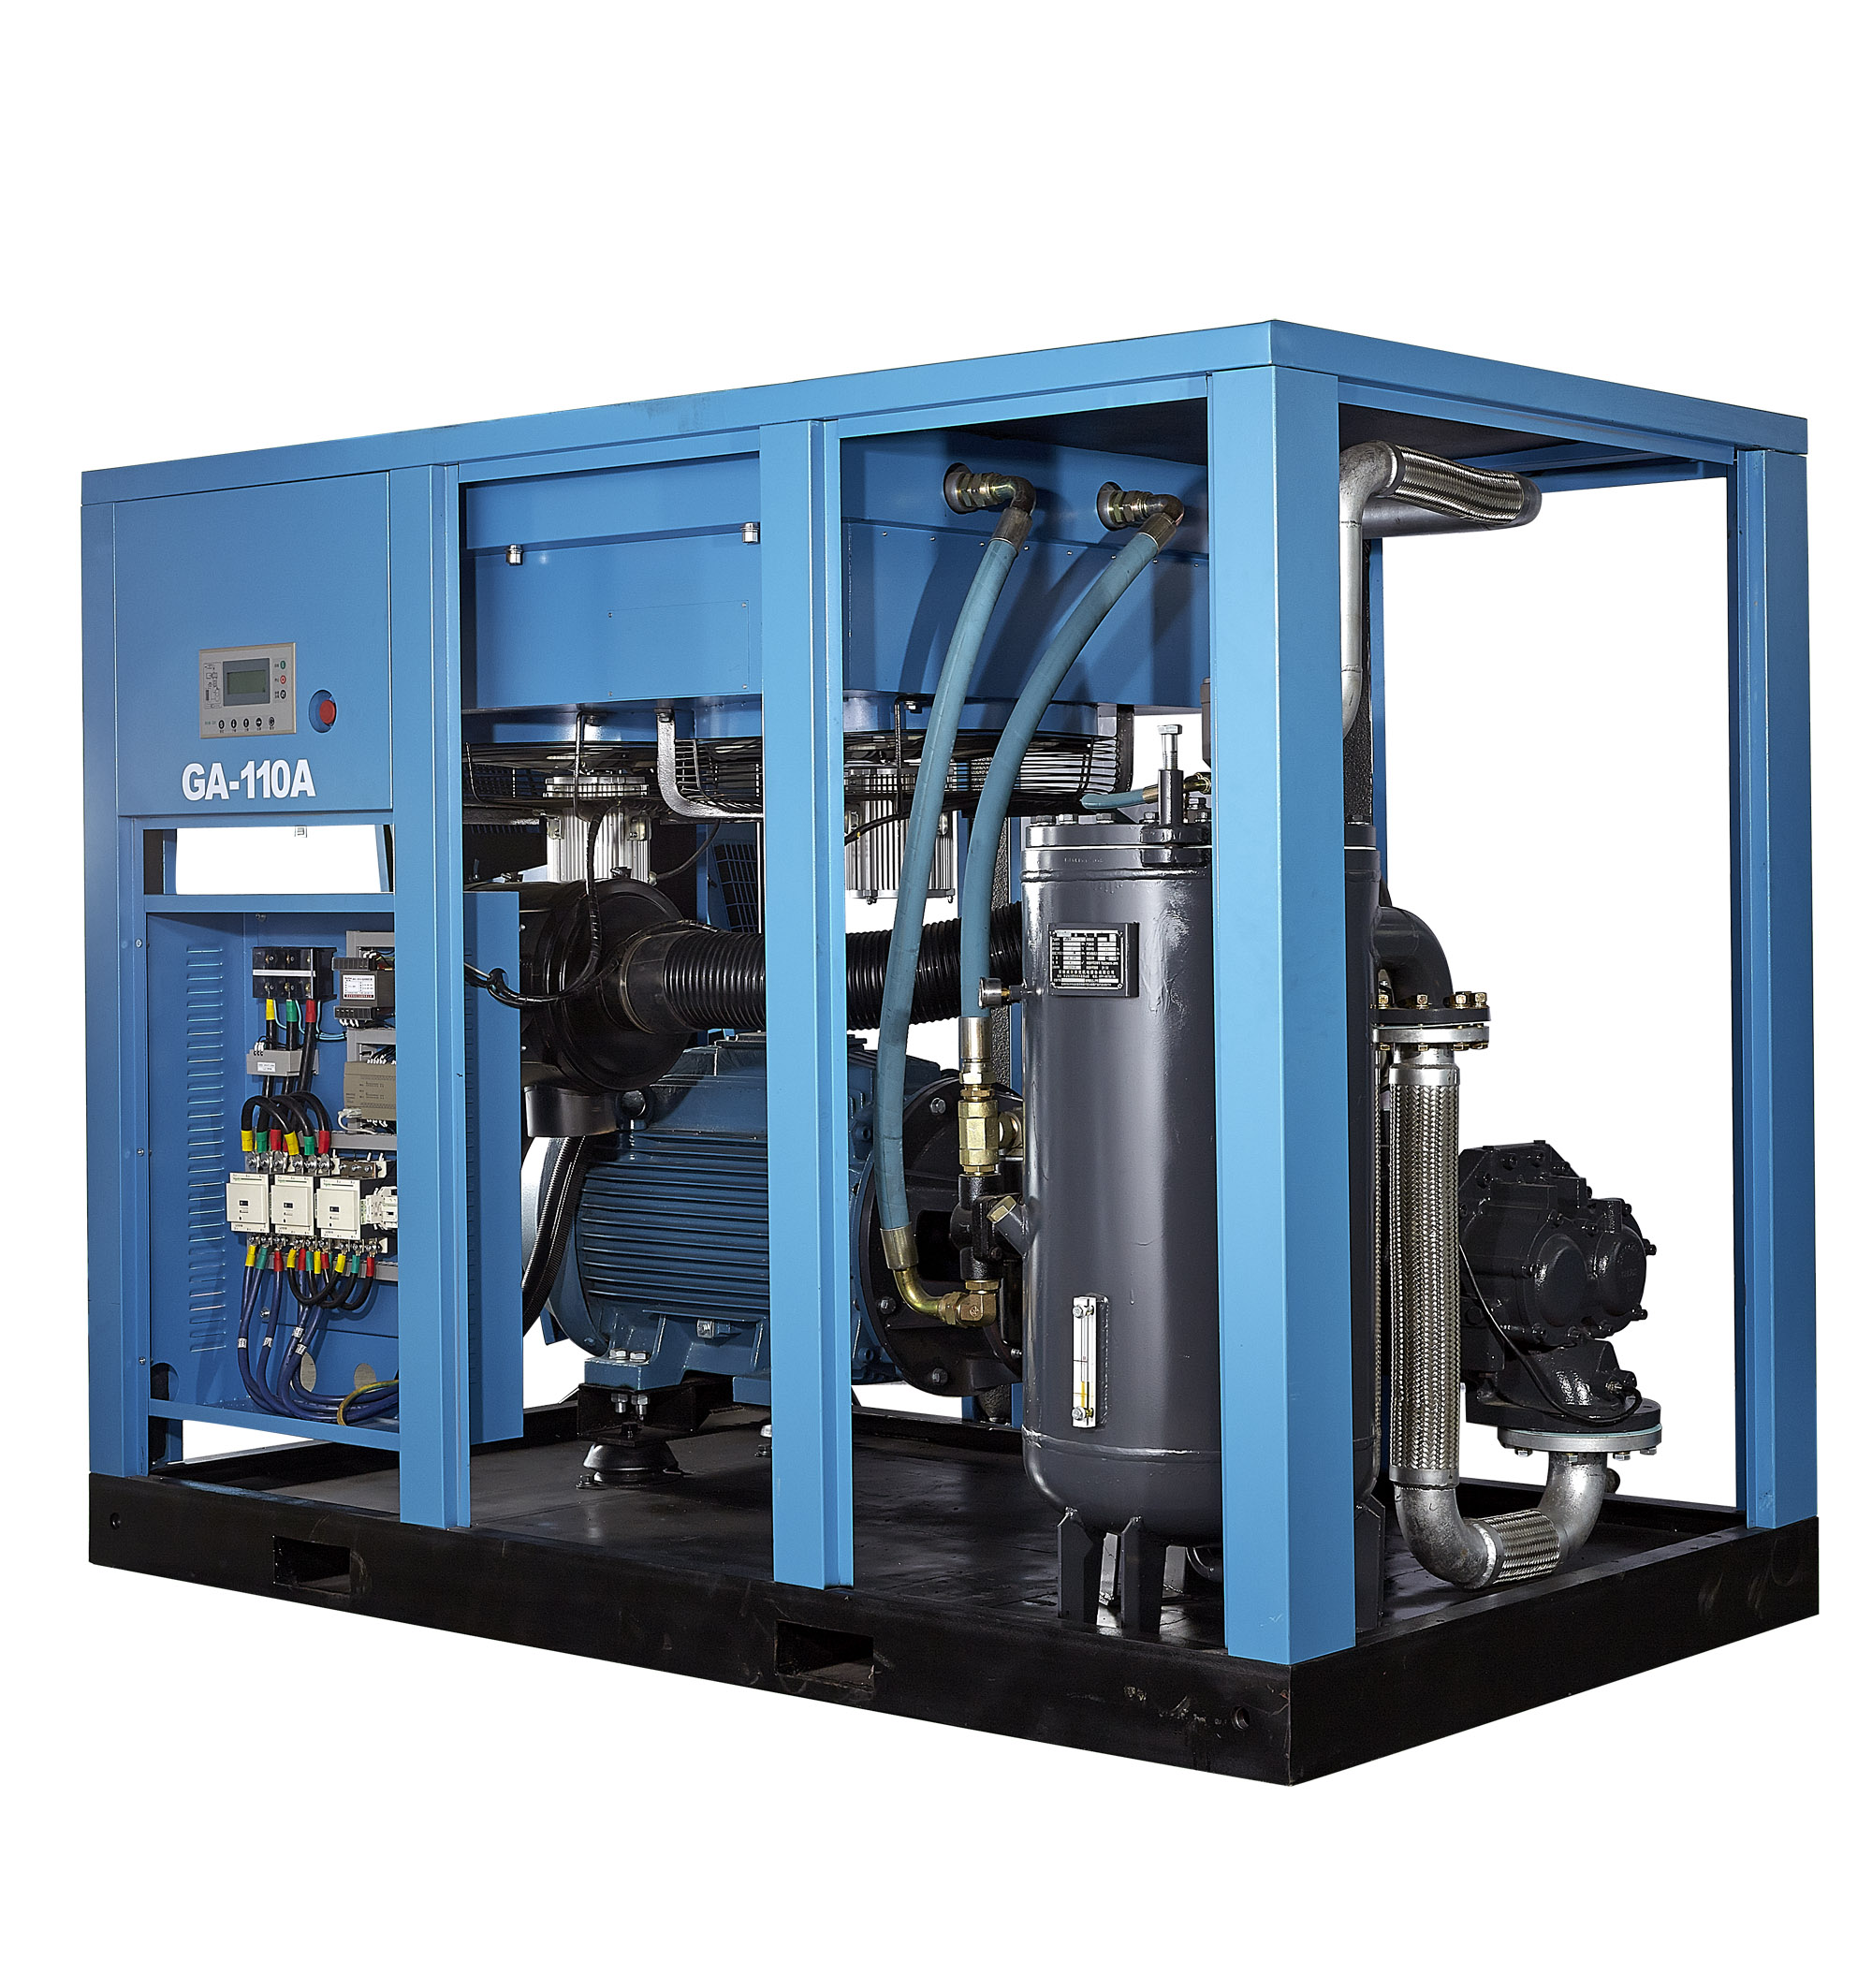 How to choose air compressor and air compressor purchase guide